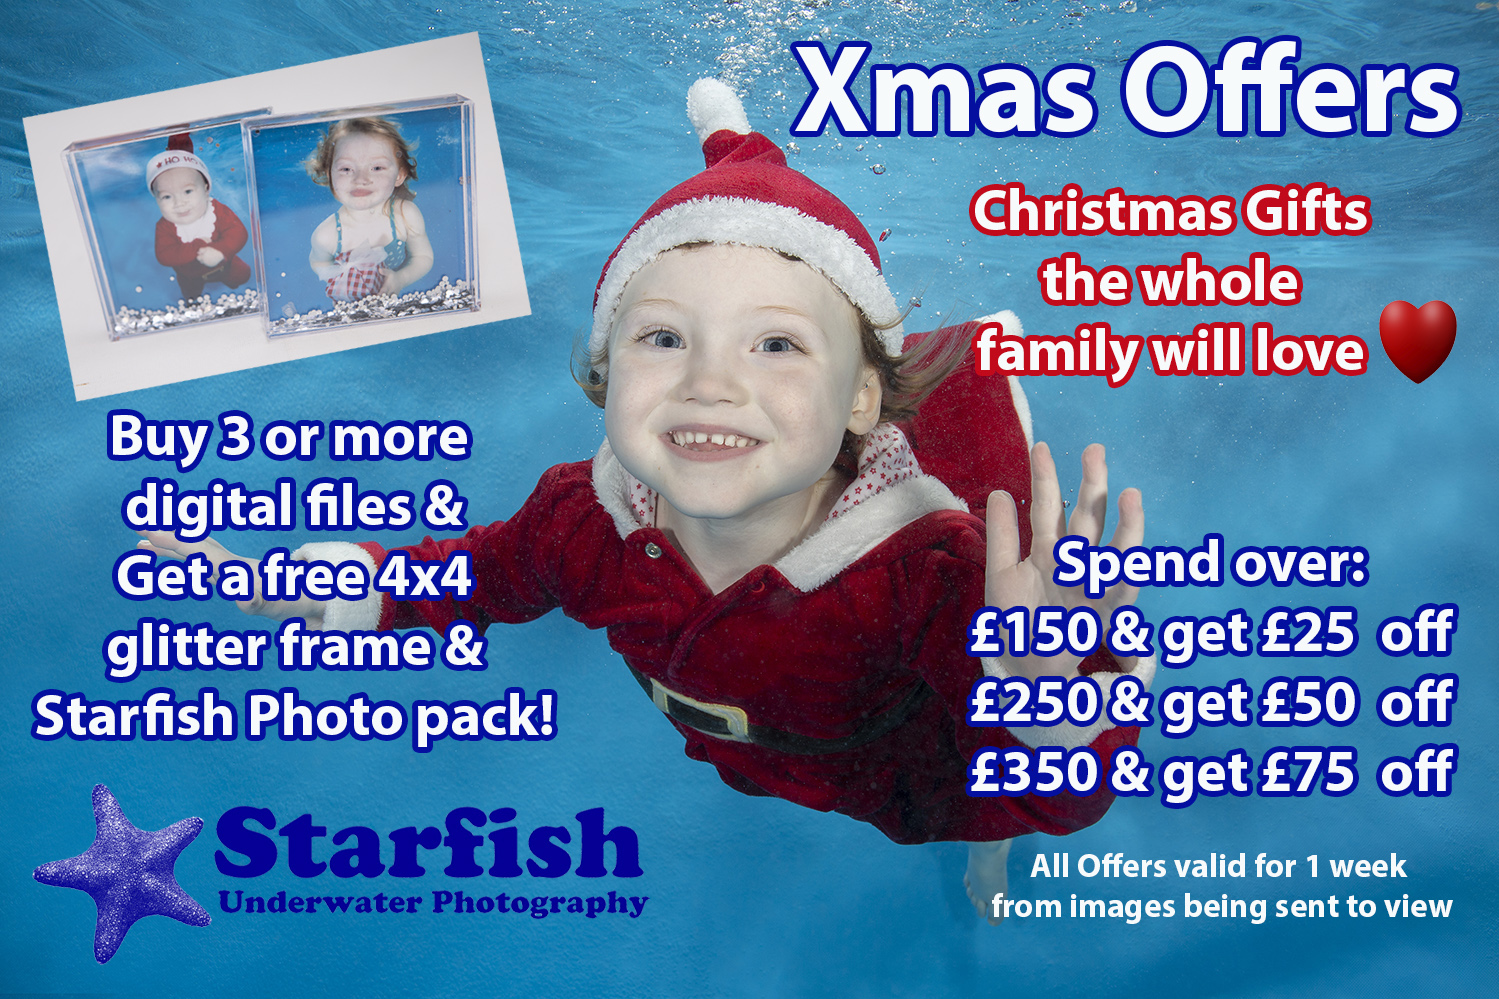 Book your Christmas shoot now to take advantage of out fantastic offers!